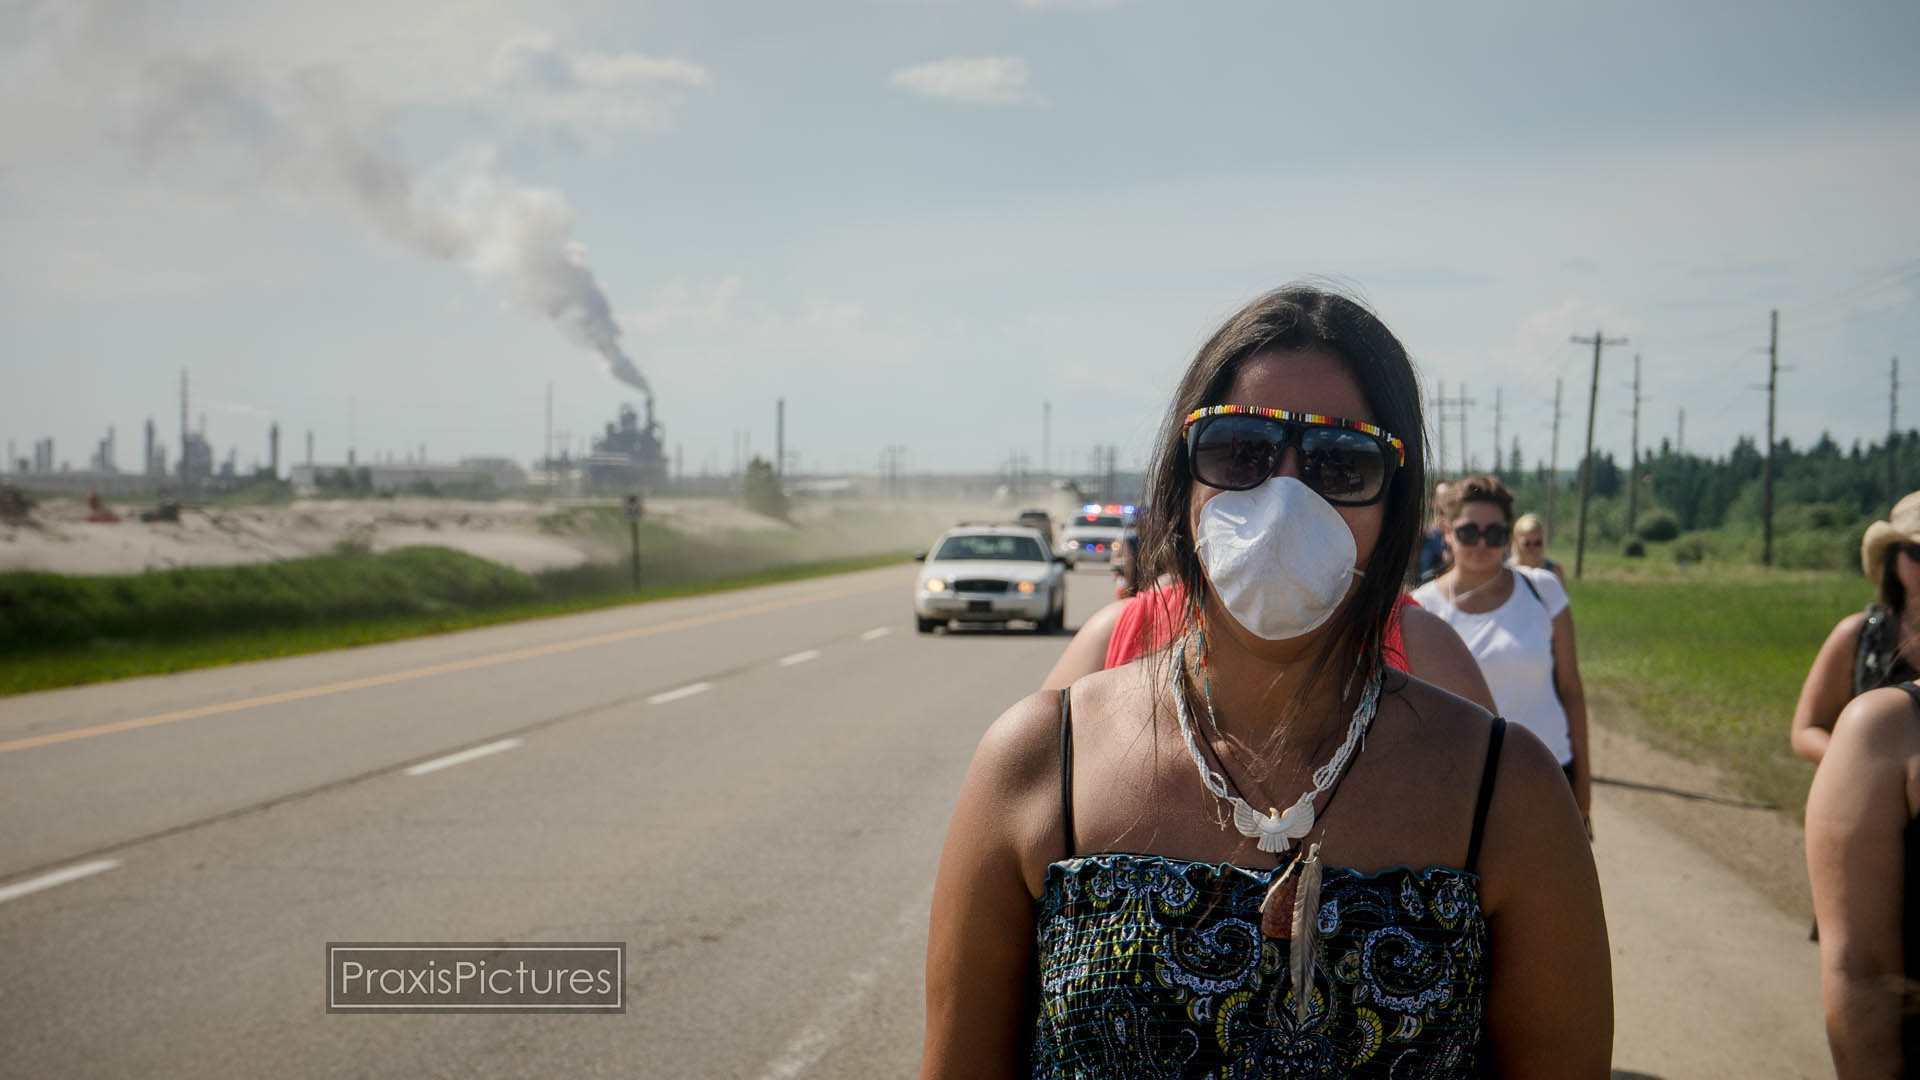 TAR SANDS HEALING WALK  (Video)    July 2014. At the Tar Sands Healing Walk, Elder Taz Bouchier talks about the impacts of the Tar Sands on Indigenous people in the Athabasca watershed. The walk covered 14 kilometres along Highway 63, where it loops around the Syncrude site, just north of Fort McMurray.   (4:48 minutes)